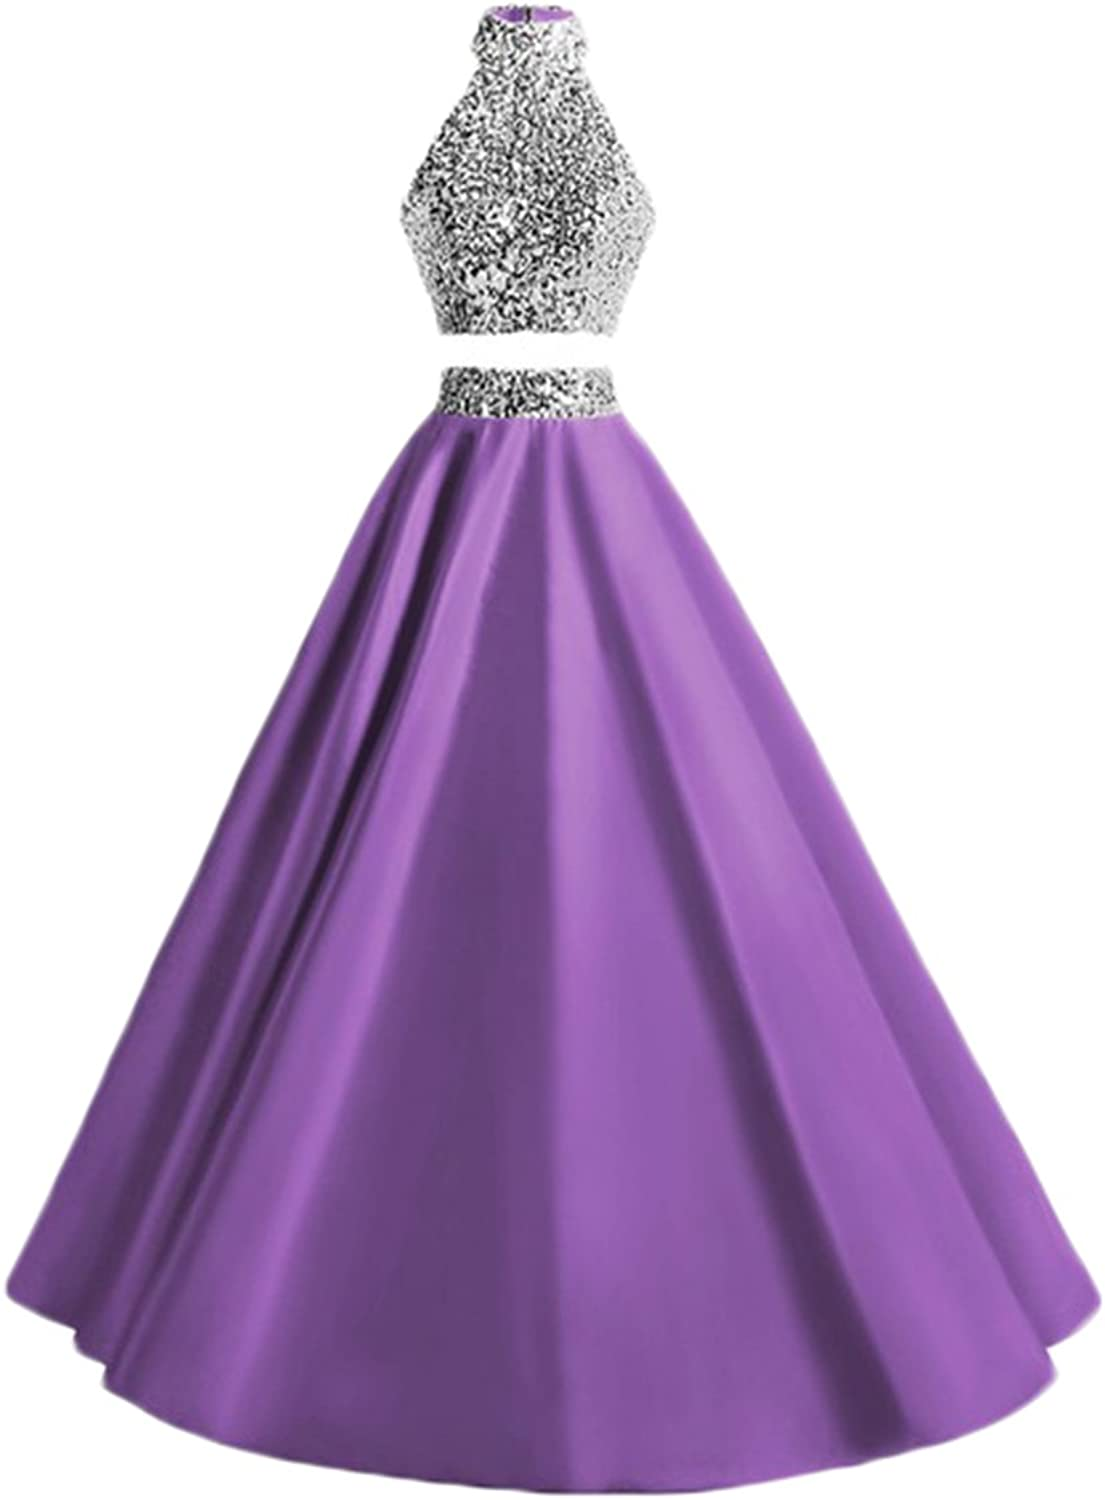 Alilith.Z Sexy Halter 2 Piece Prom Dresses Sequins Satin Long Formal Evening Dresses Party Gowns for Women